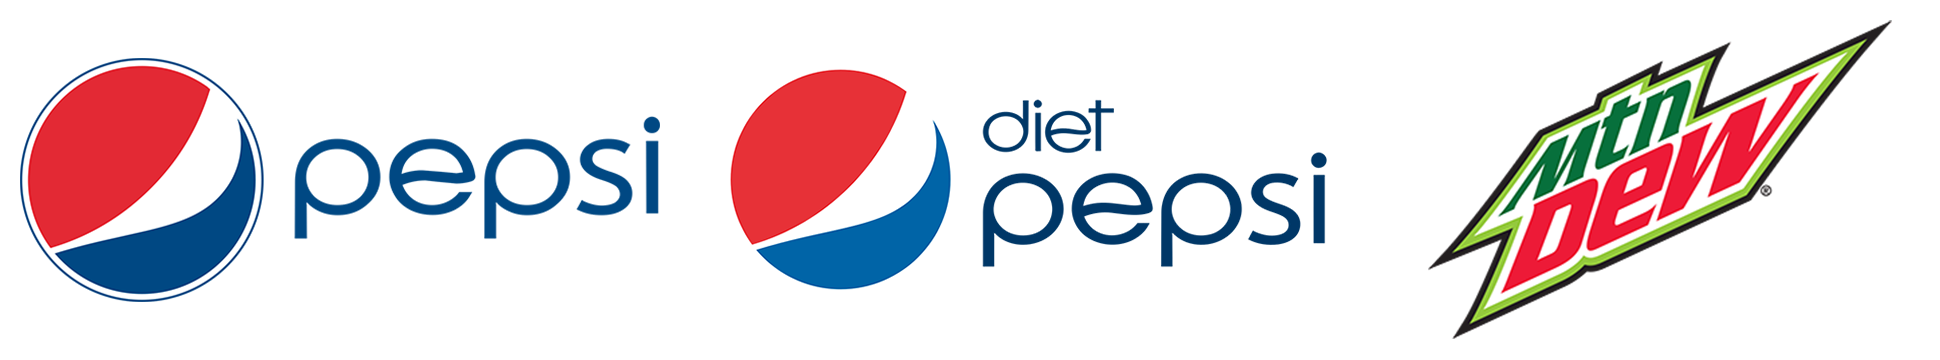 Drinks Logos — Pepsi | Diet Pepsi | Mountain Dew